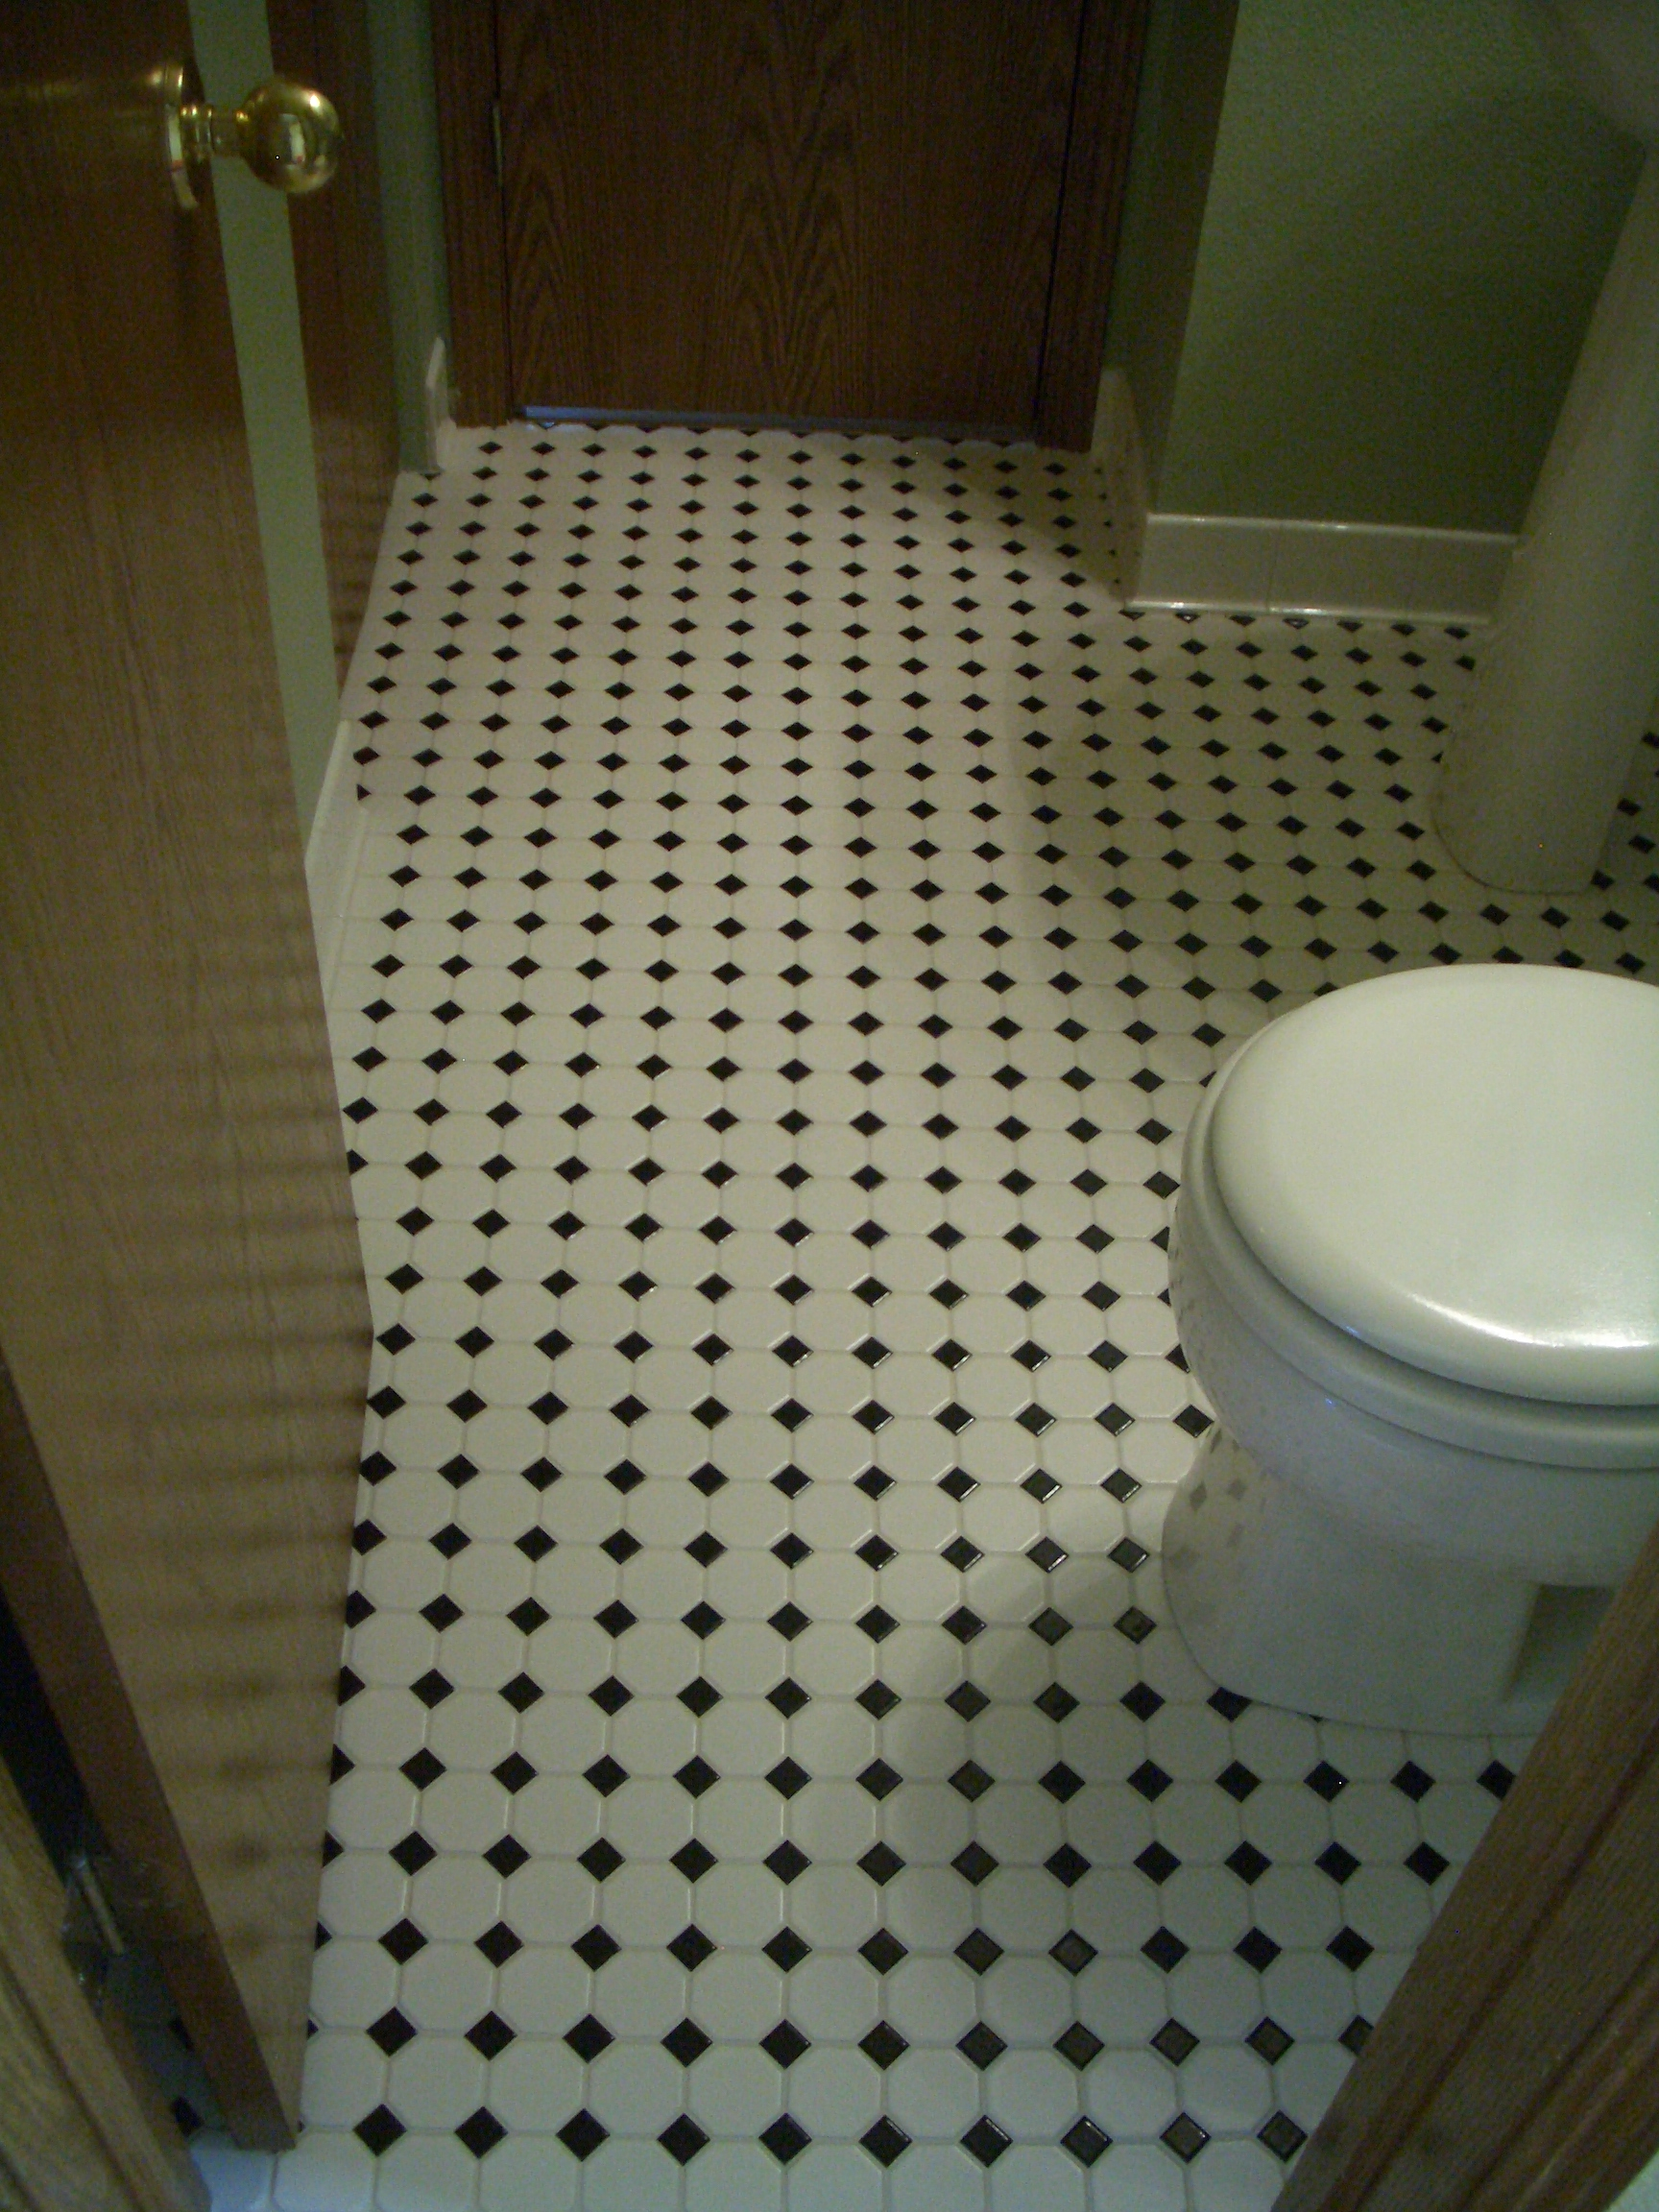 30 great ideas and pictures of self adhesive vinyl floor Images of bathroom tile floors